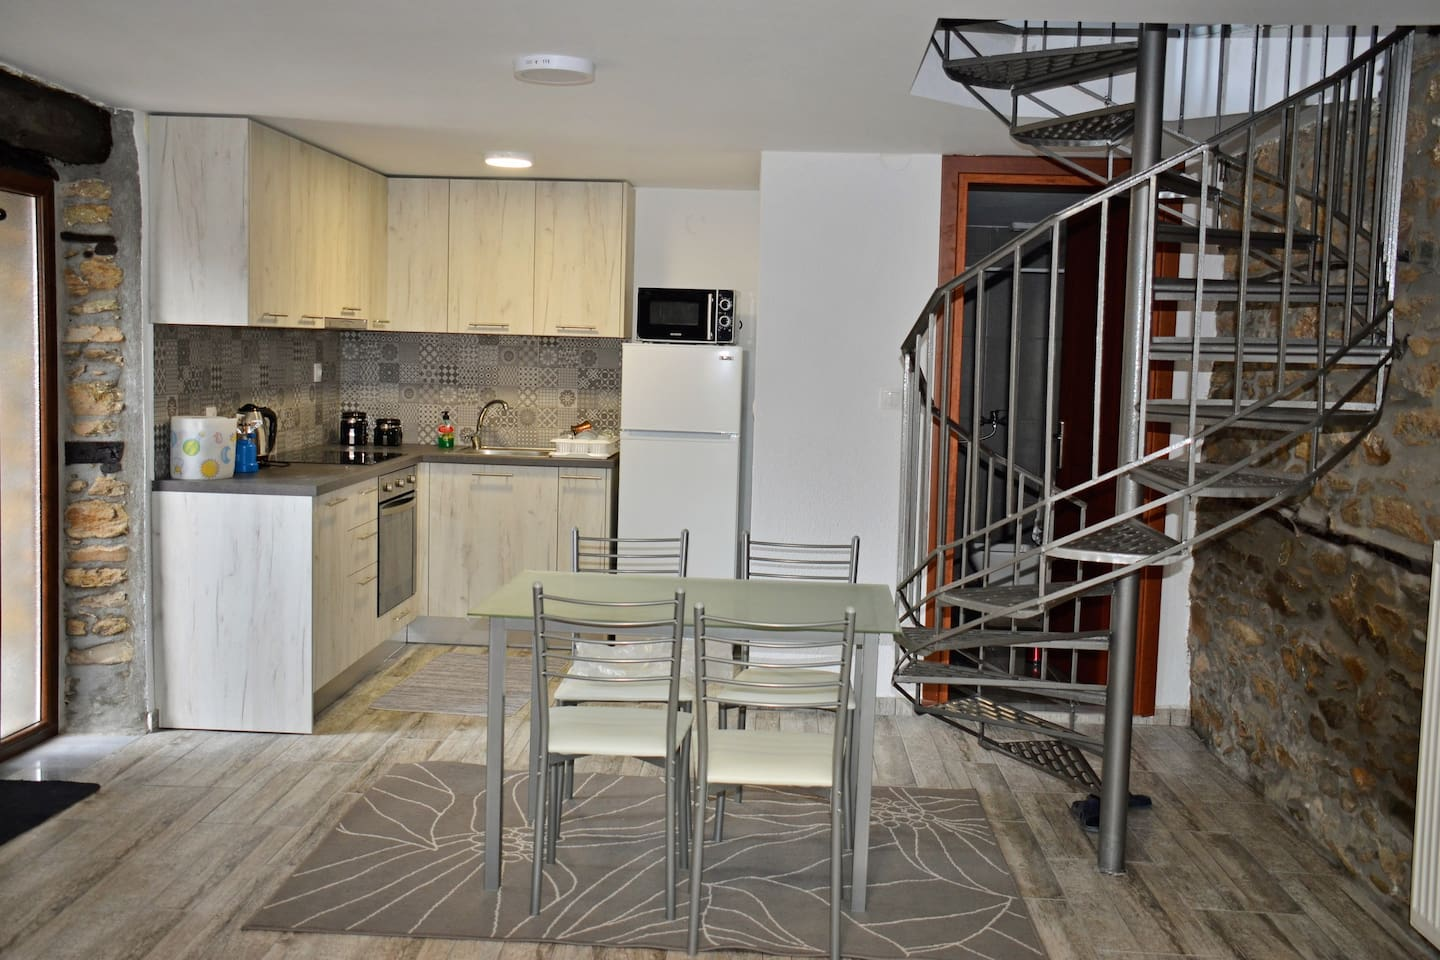 Fully equipped kitchen with pots, pans, coffee, etc and spiral stairs